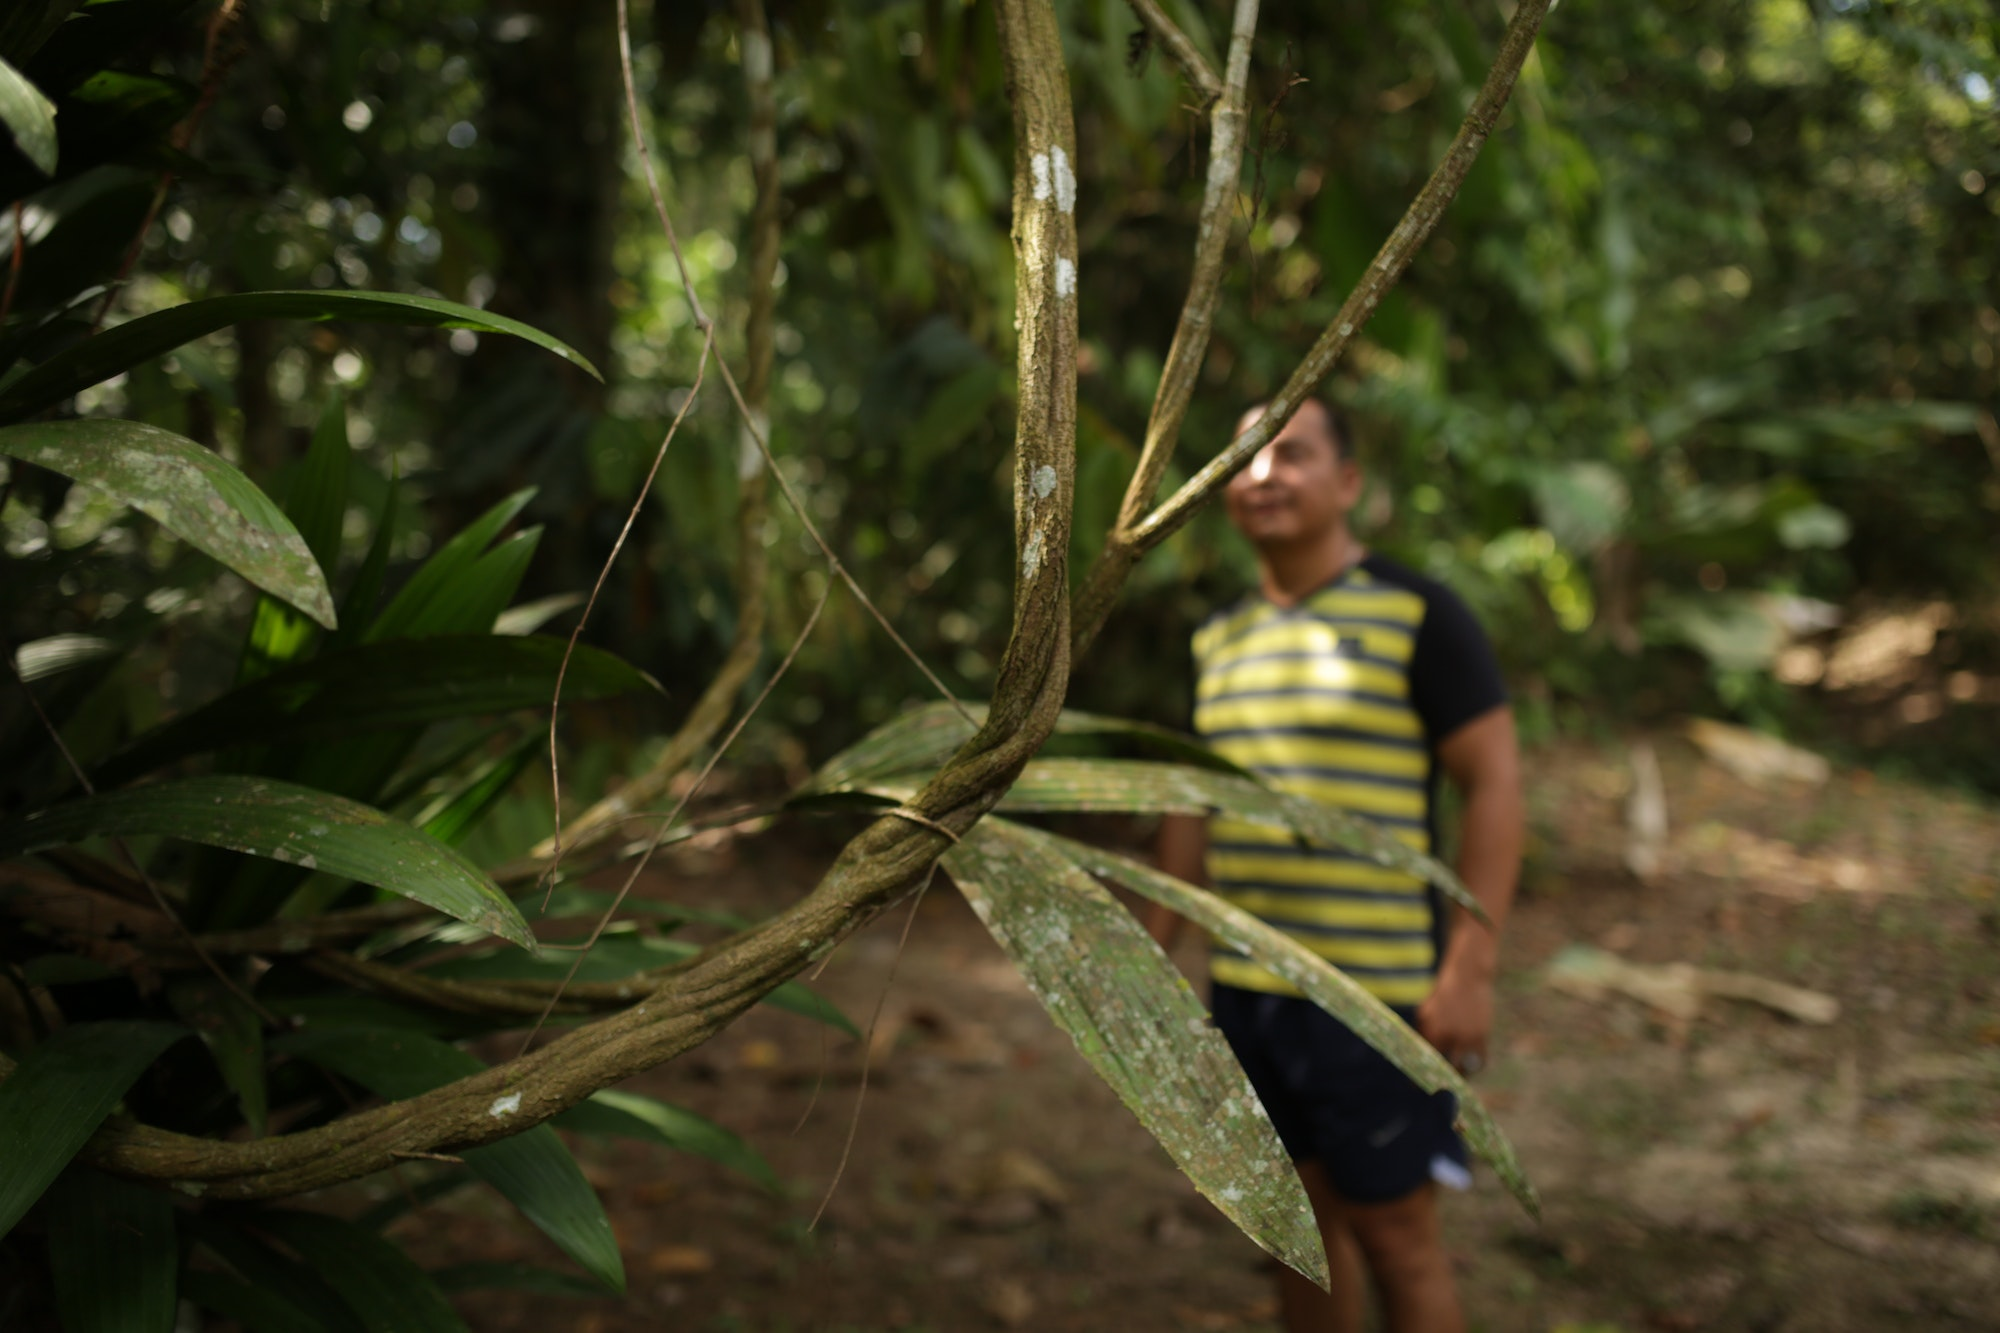 Shaman Percy stands behind an ayahuasca vine outside Iquitos, Peru.